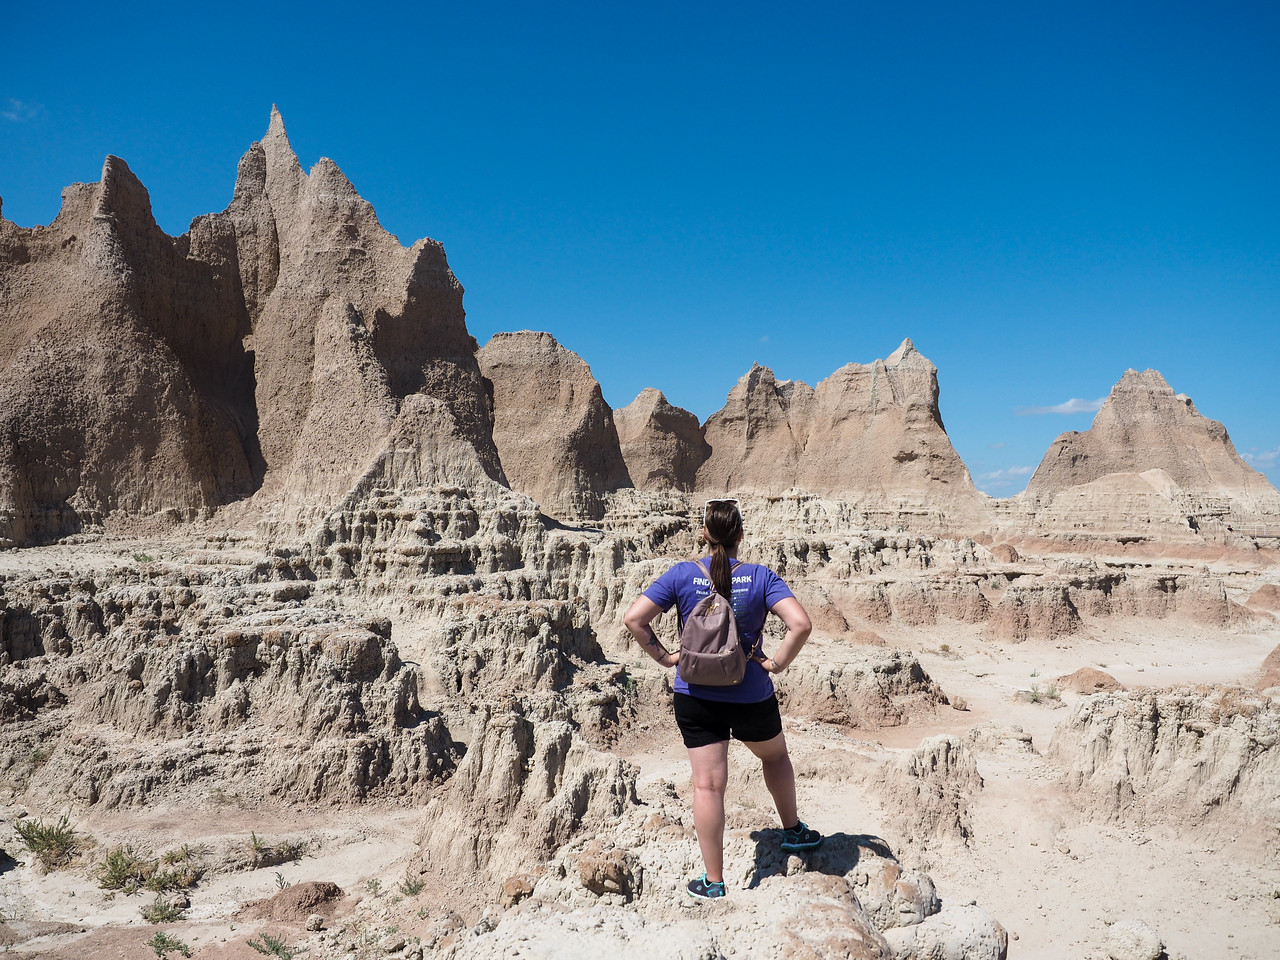 Amanda at Badlands National Park